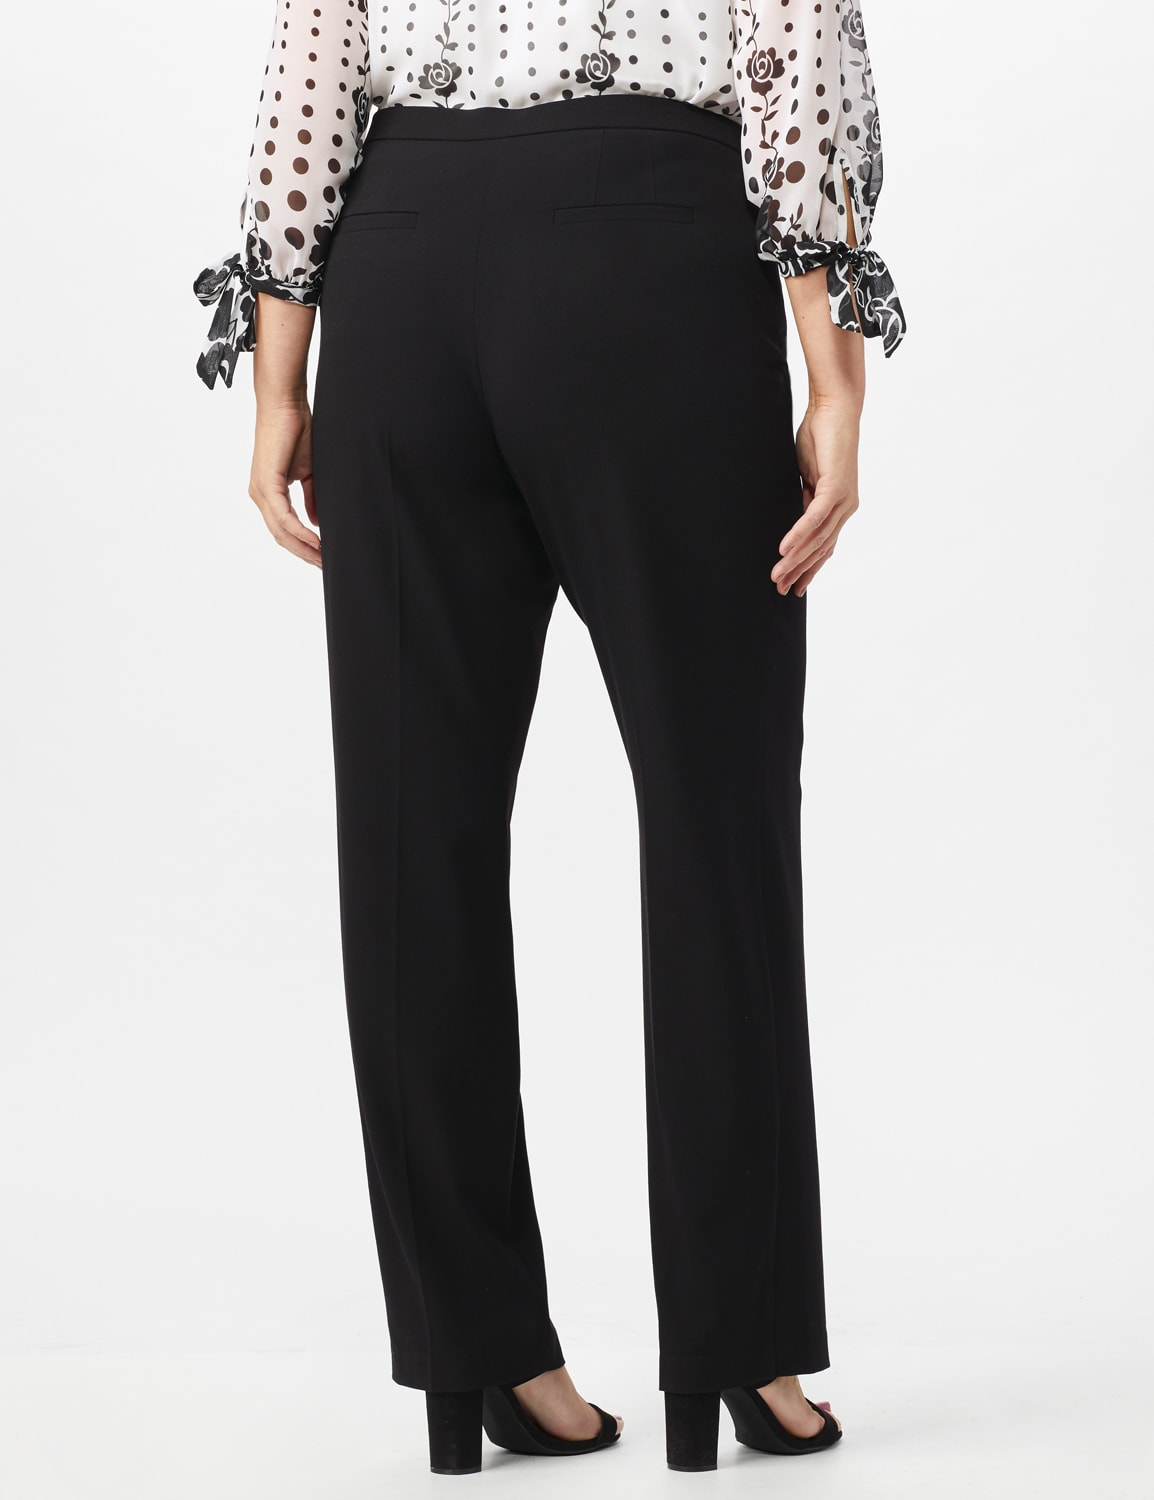 Roz & Ali  Plus Secret Agent Trouser  Pants with Cat Eye Pockets & Zip - Black - Back